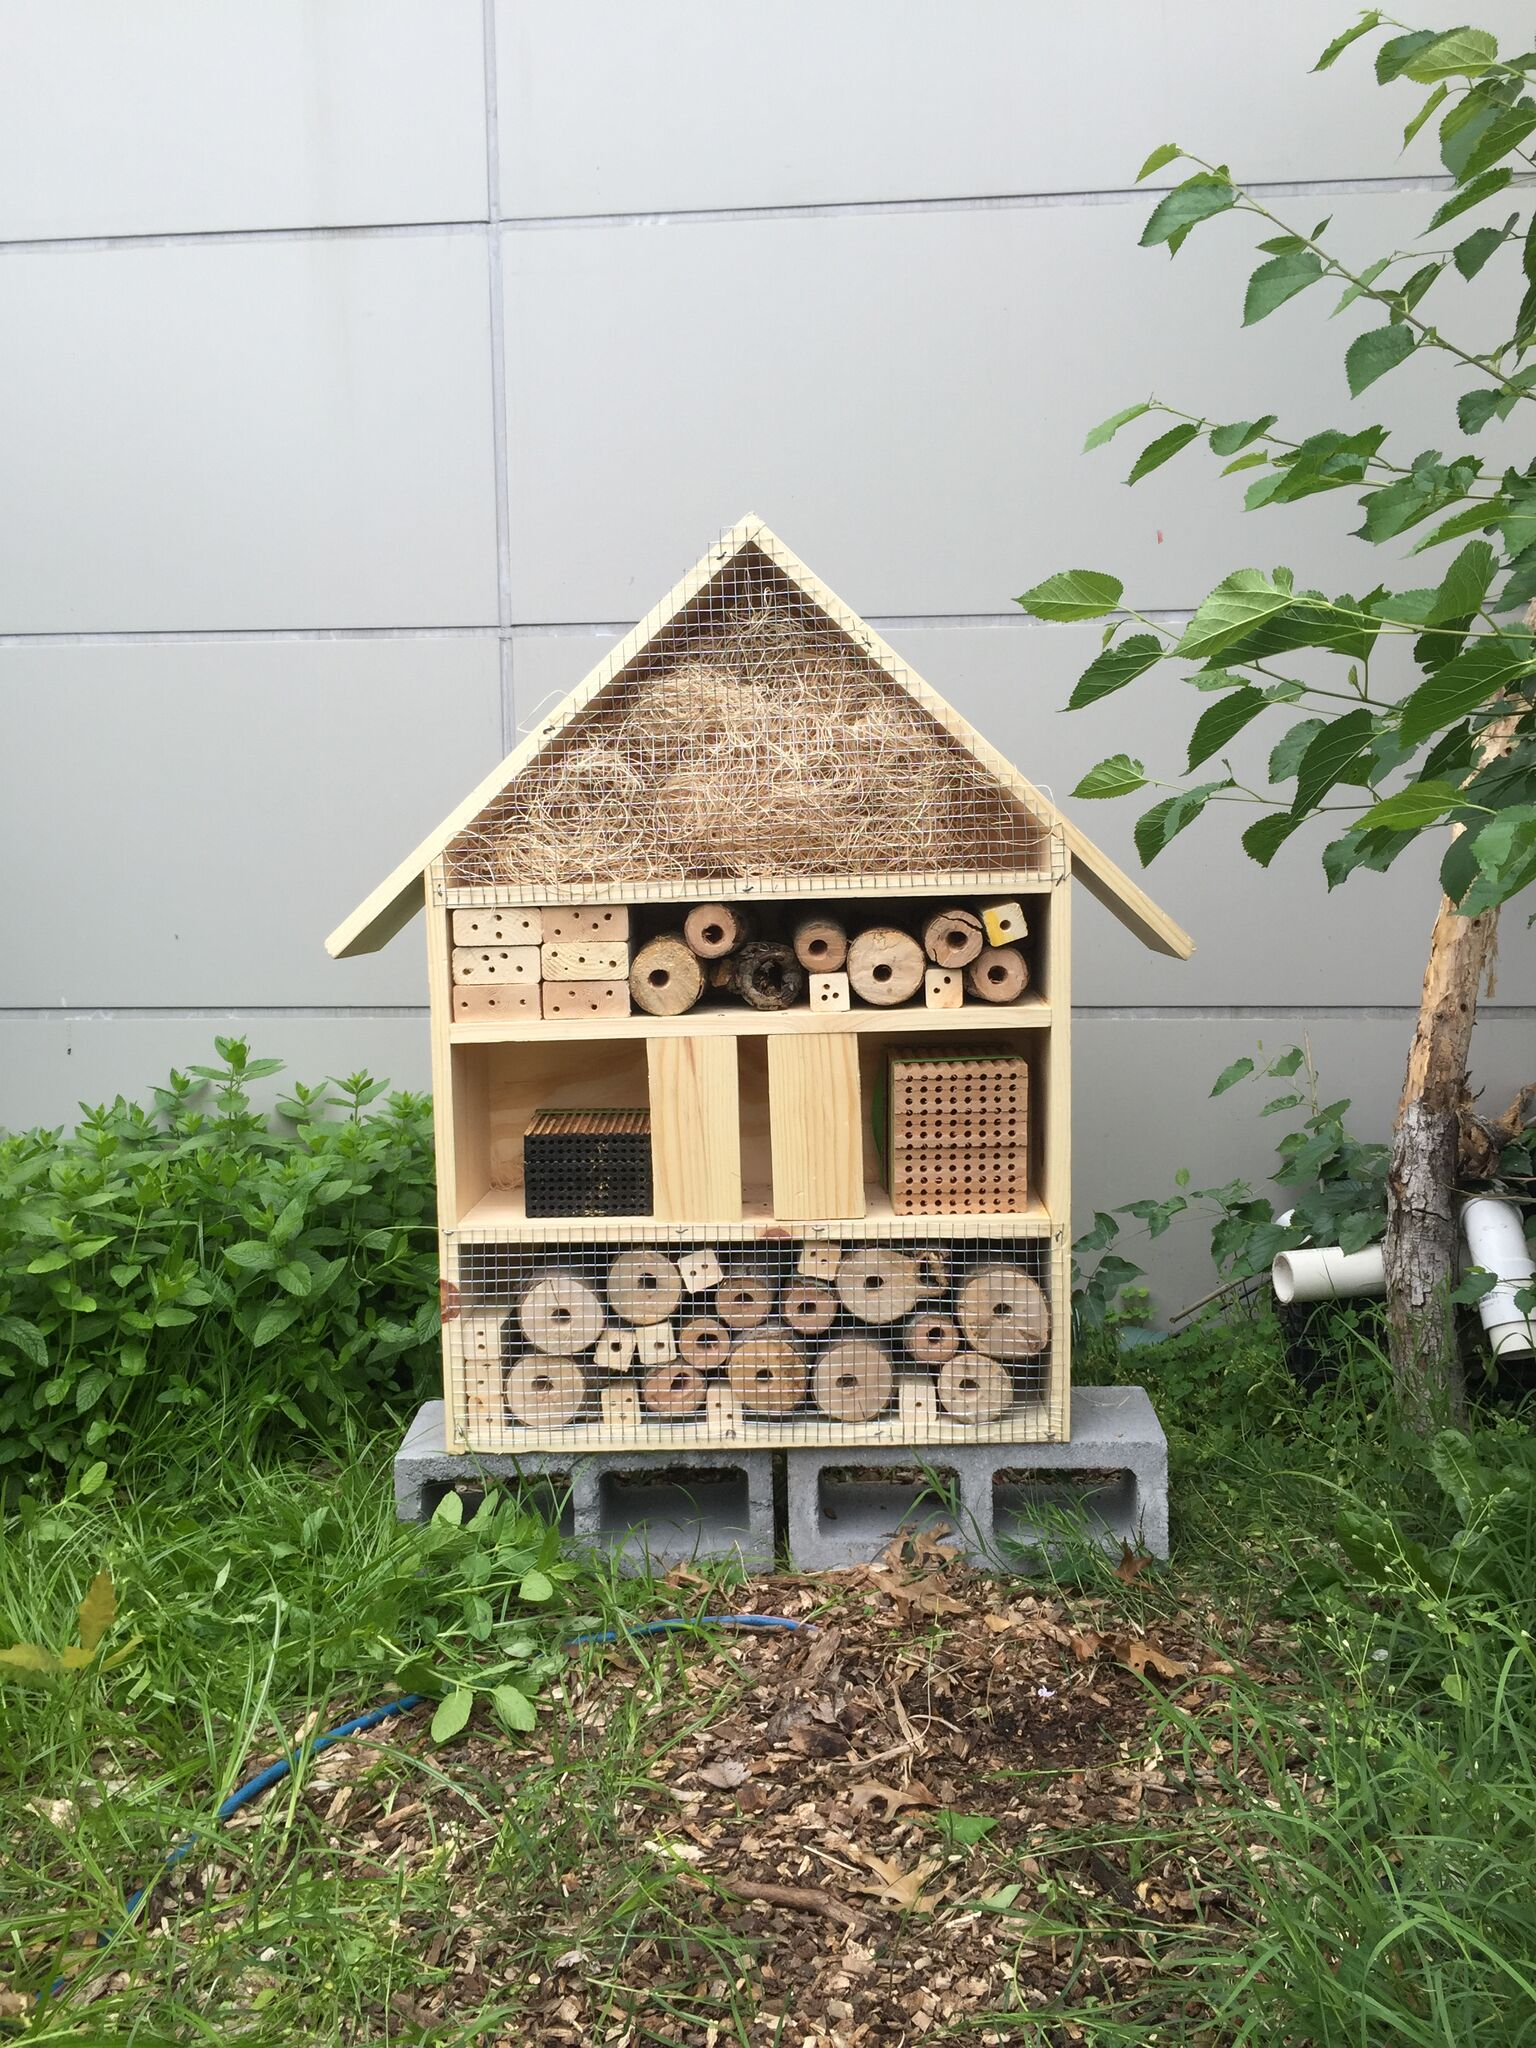 Build your own native bee house beyond pesticides for Build your own house program